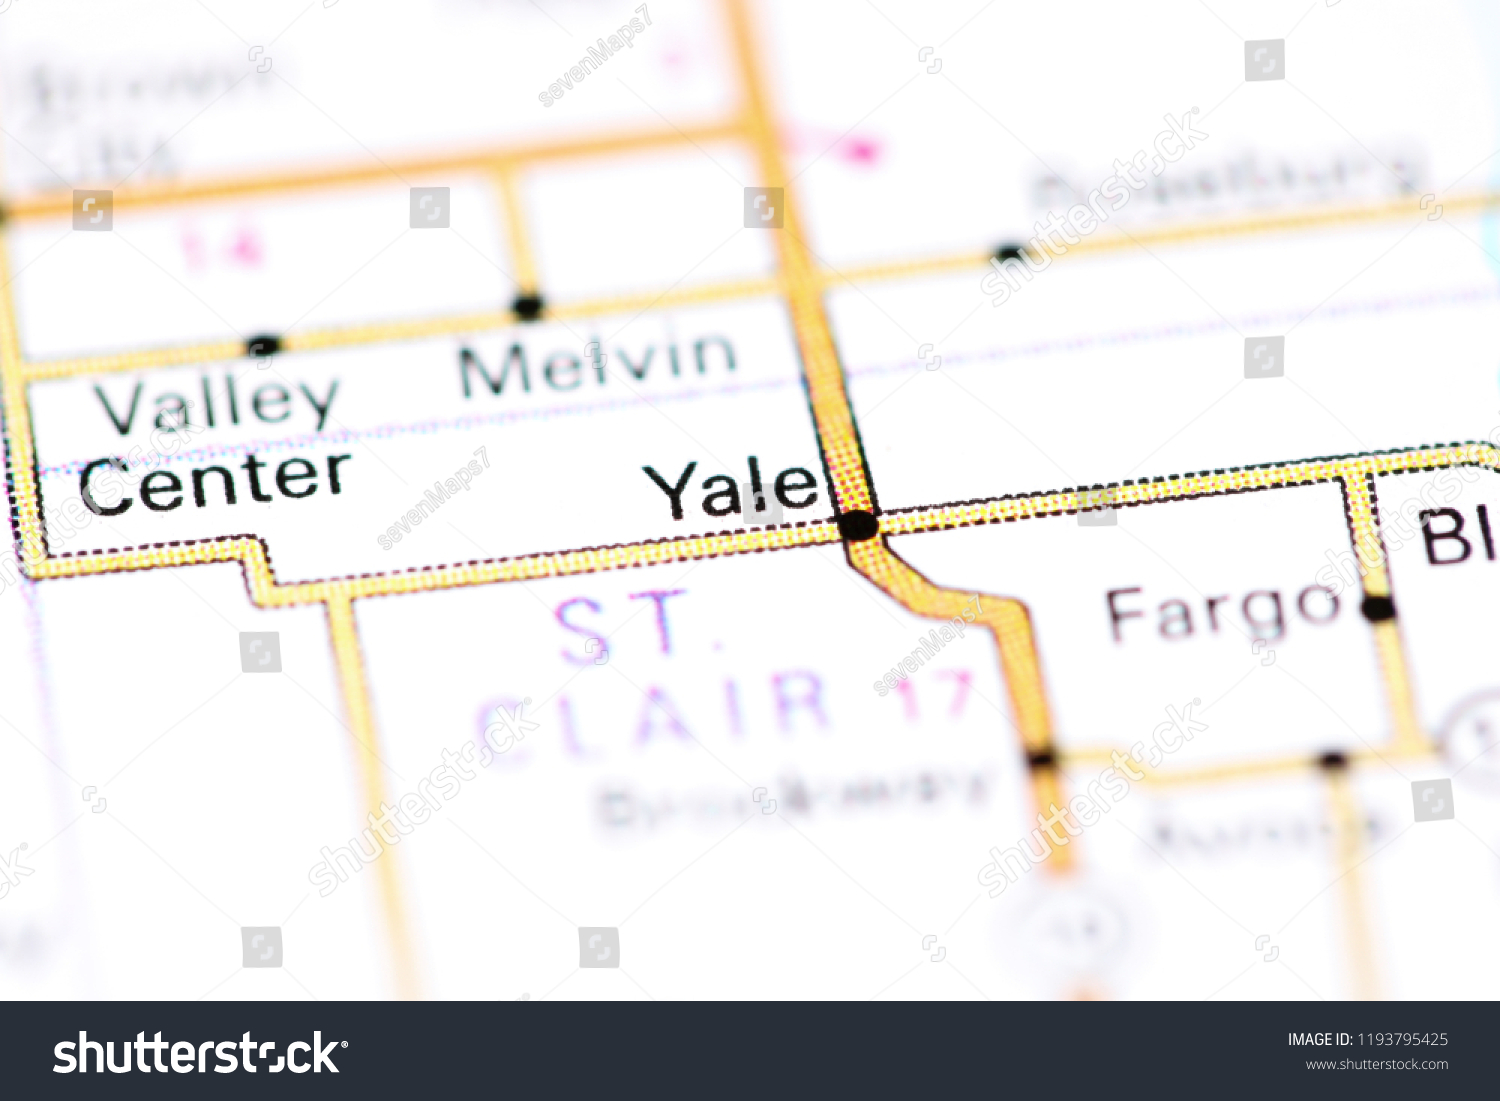 Yale Michigan Usa On Map Stock Photo (Edit Now) 1193795425 on princeton map, mermaid map, harvard map, bates map, thames river on world map, wagner map, union map, amherst map, unitec map, ohio u map, london location on world map, west texas a&m map, albany state map, grambling state map, university of pennsylvania map, clayton map, city borders map, englewood map, ceibs map, loyola map,